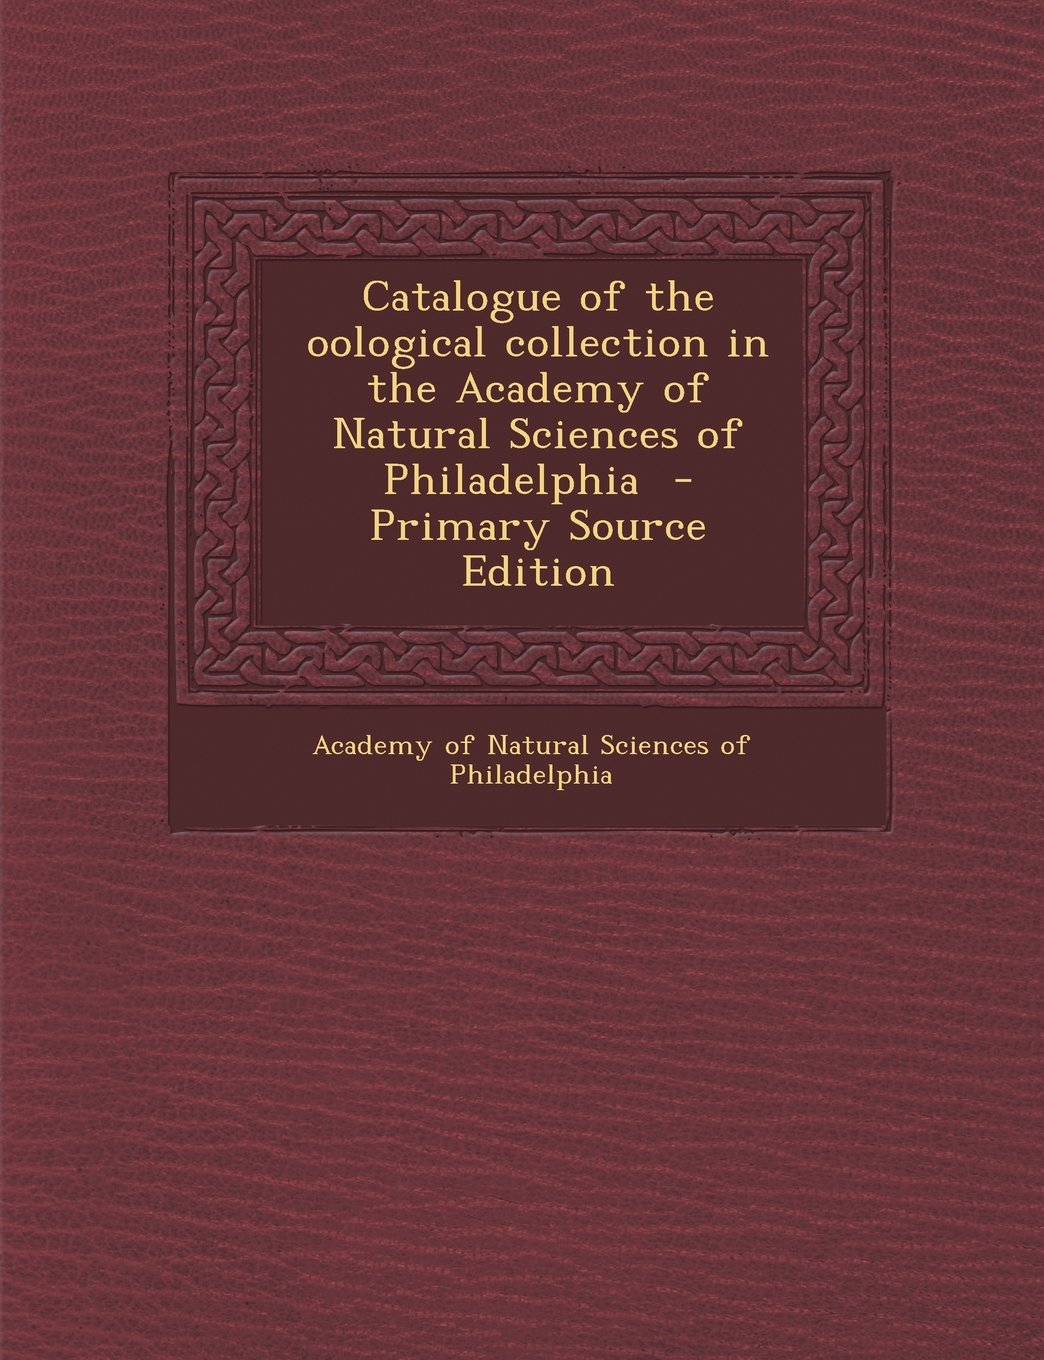 Catalogue of the Oological Collection in the Academy of Natural Sciences of Philadelphia - Primary Source Edition pdf epub